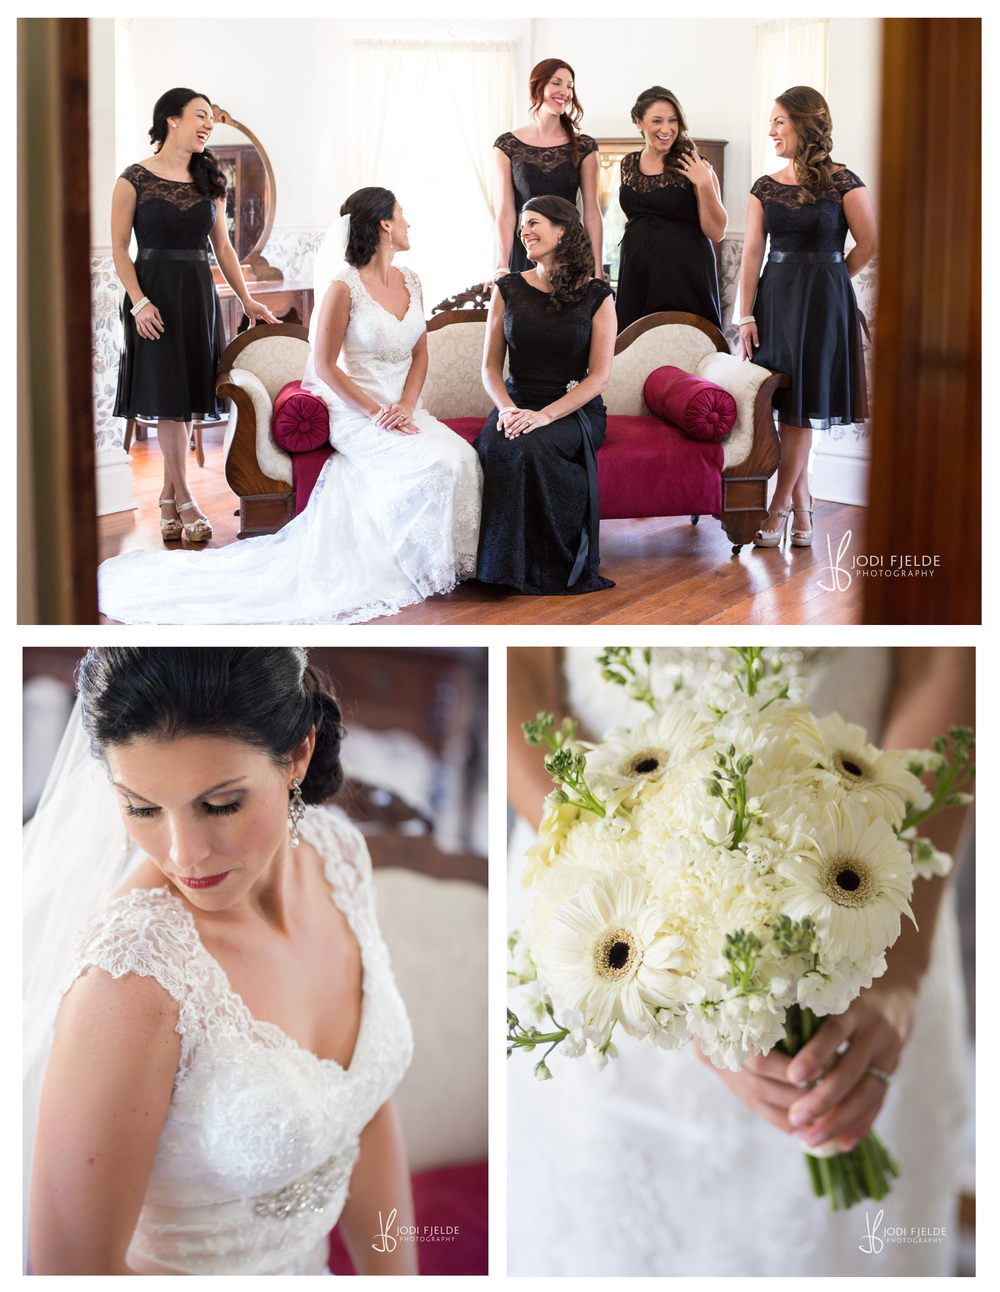 Highland_Manor_Apopka_Florida_wedding_Jackie_&_Tim_photography_jodi_Fjelde_photography-8.jpg